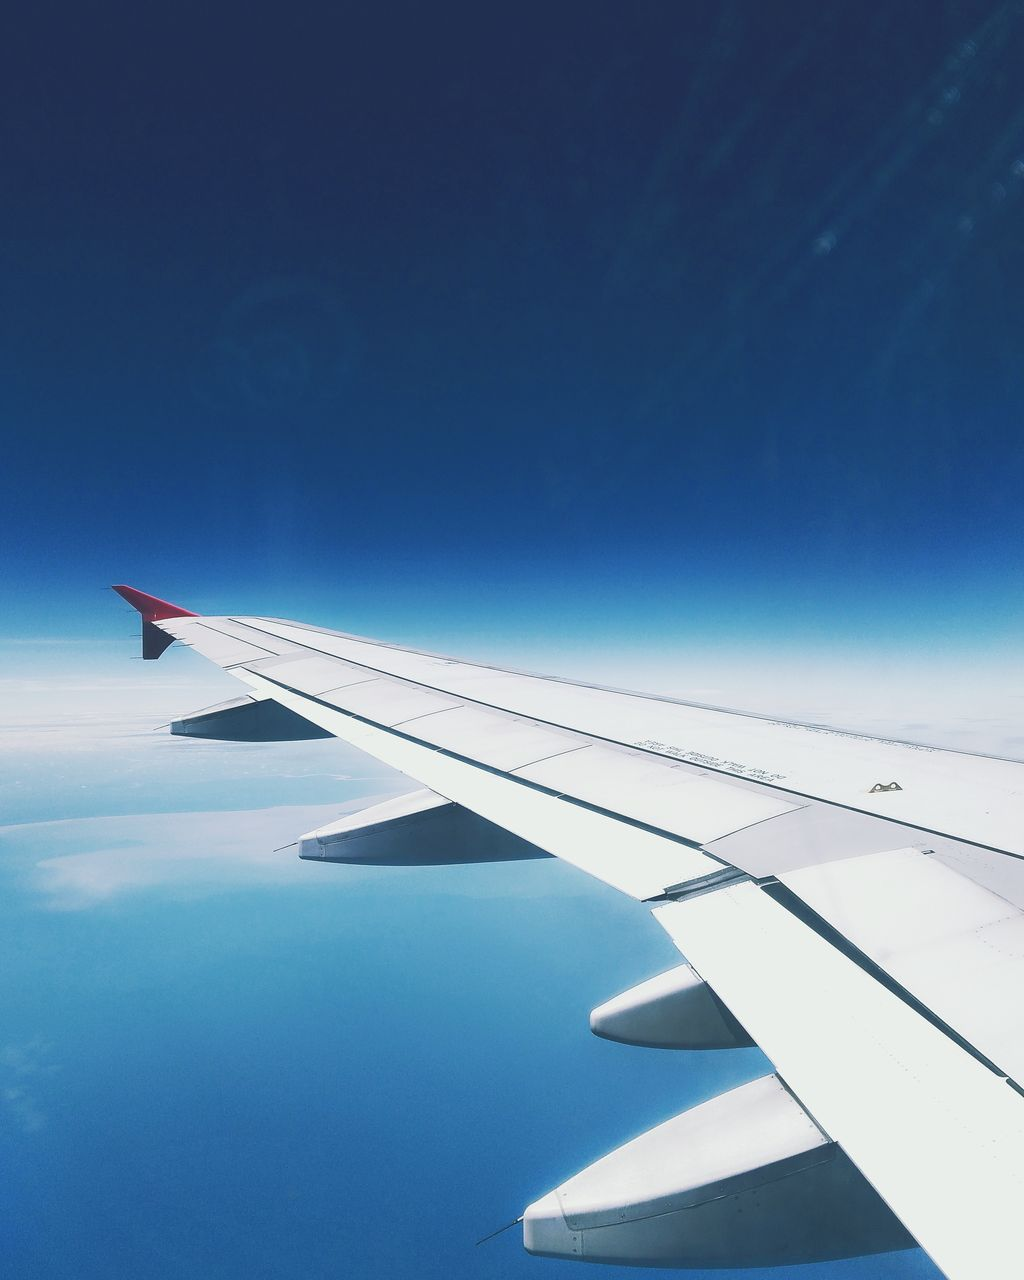 airplane, transportation, blue, journey, no people, mode of transport, sky, airplane wing, travel, aircraft wing, nature, air vehicle, day, aerial view, flying, outdoors, beauty in nature